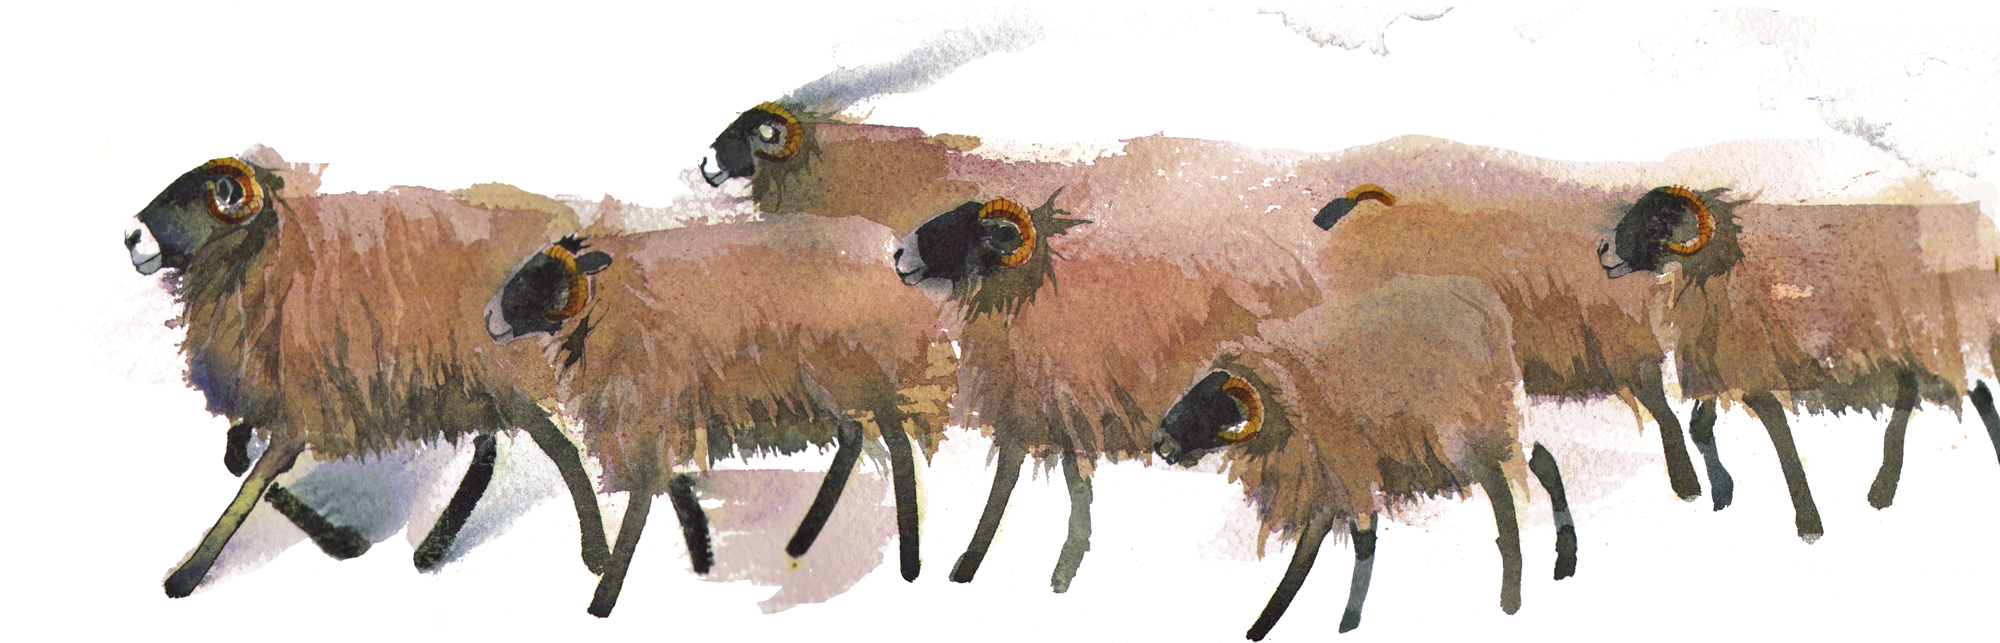 Swale Sheep, SOLD image